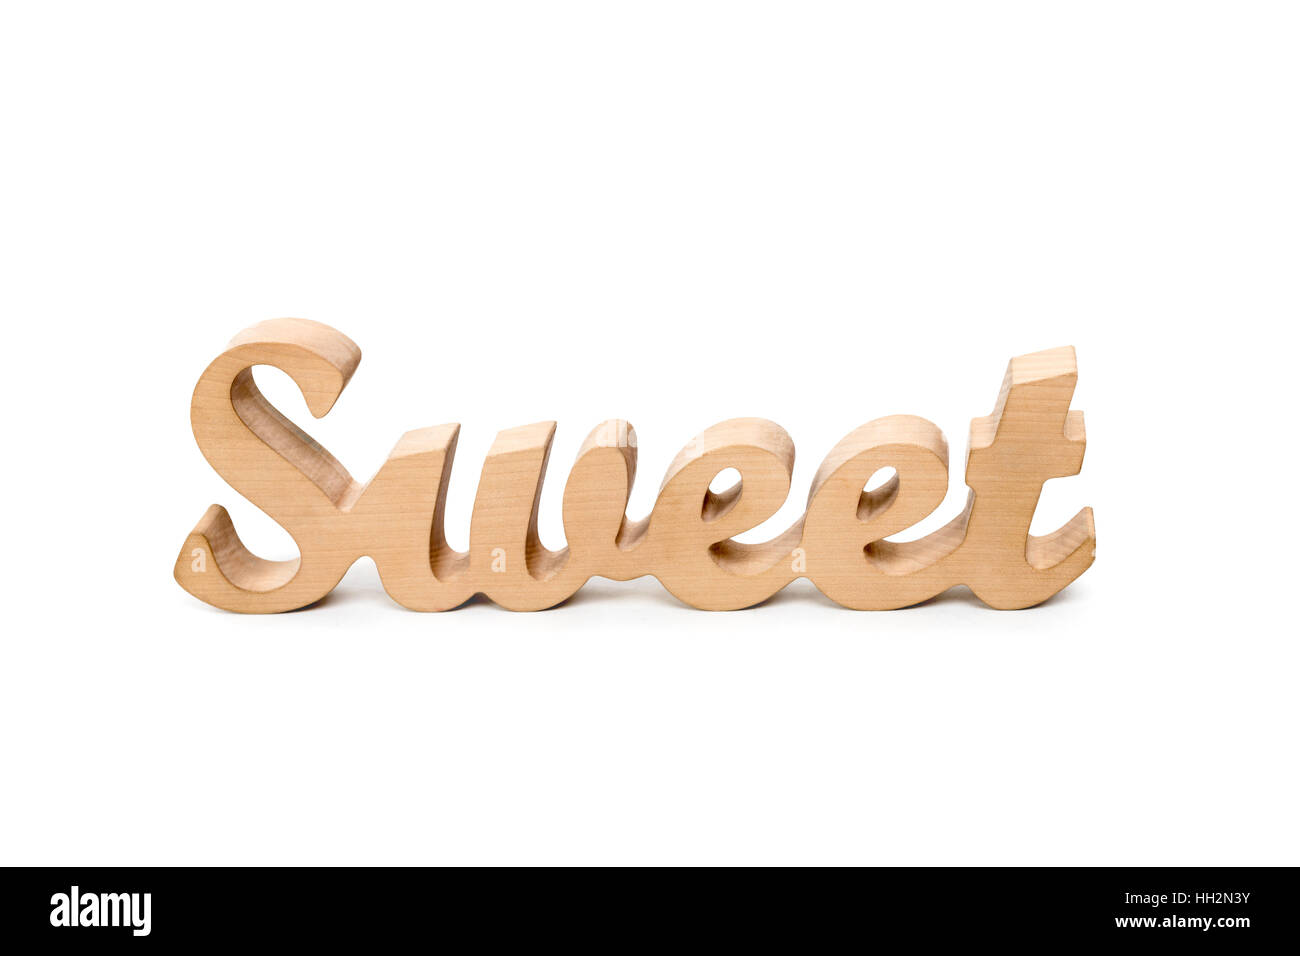 Word sweet, wooden letters on white background. Lovestory or wedding decor